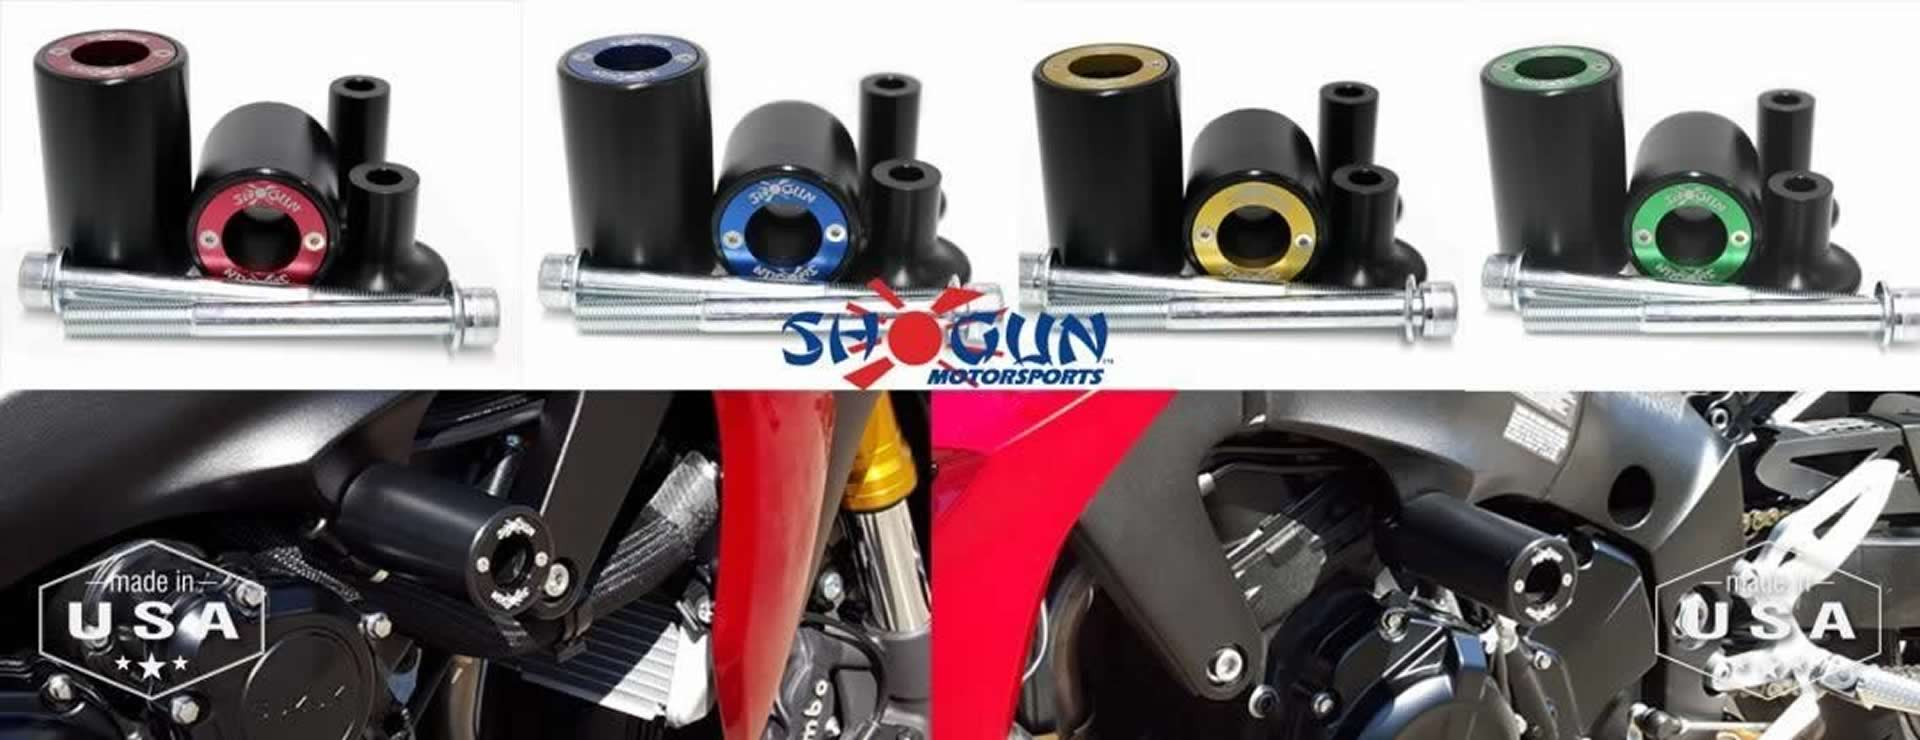 Shogun PA2 Frame Sliders